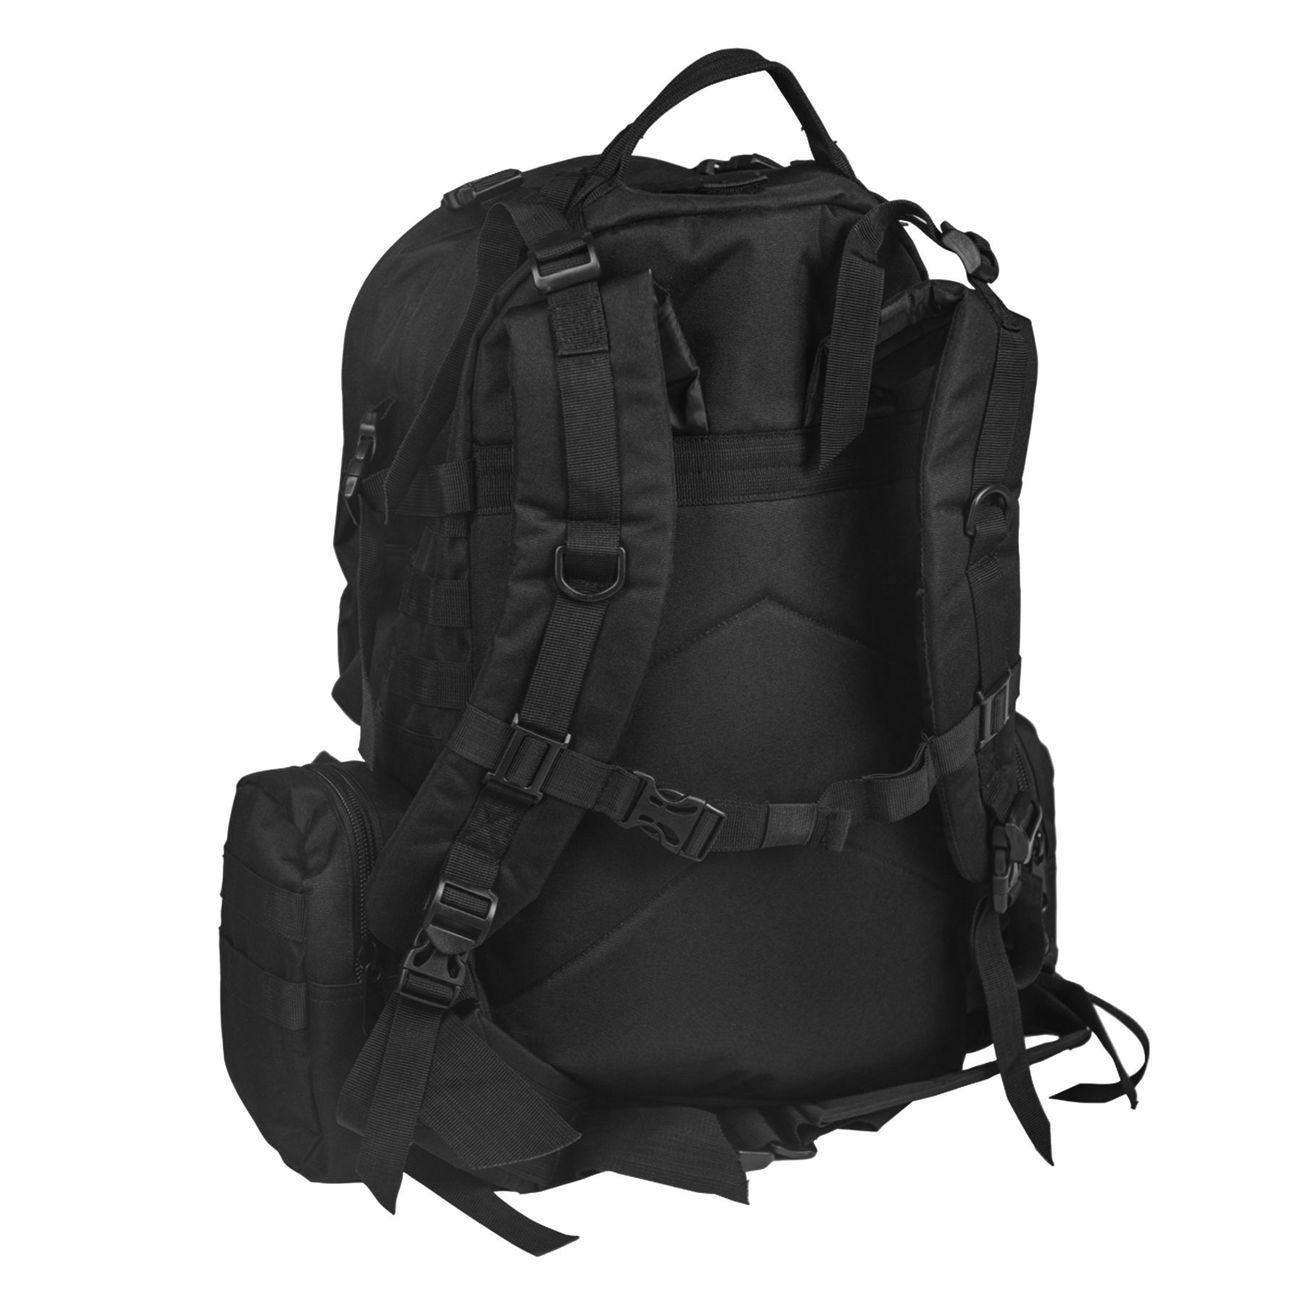 Mil-Tec Rucksack Defense Pack Assembly 36 ltr. schwarz 1